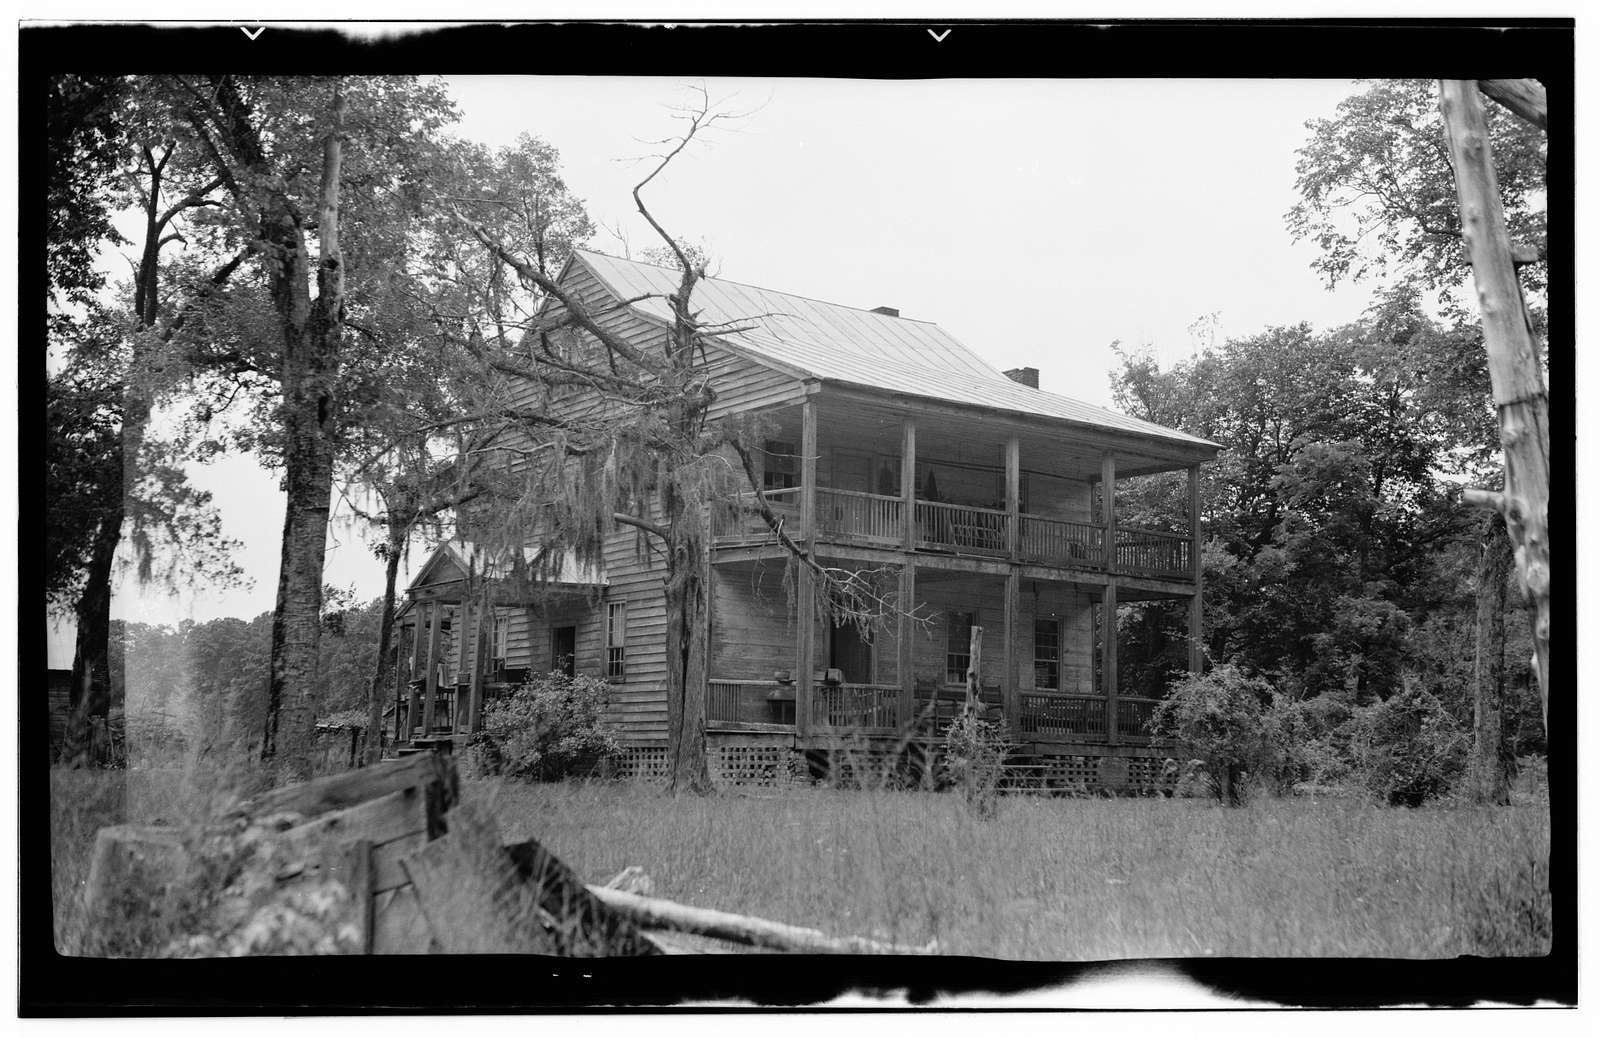 James Harrell House, State Route 1347, Bethel, Perquimans County, NC